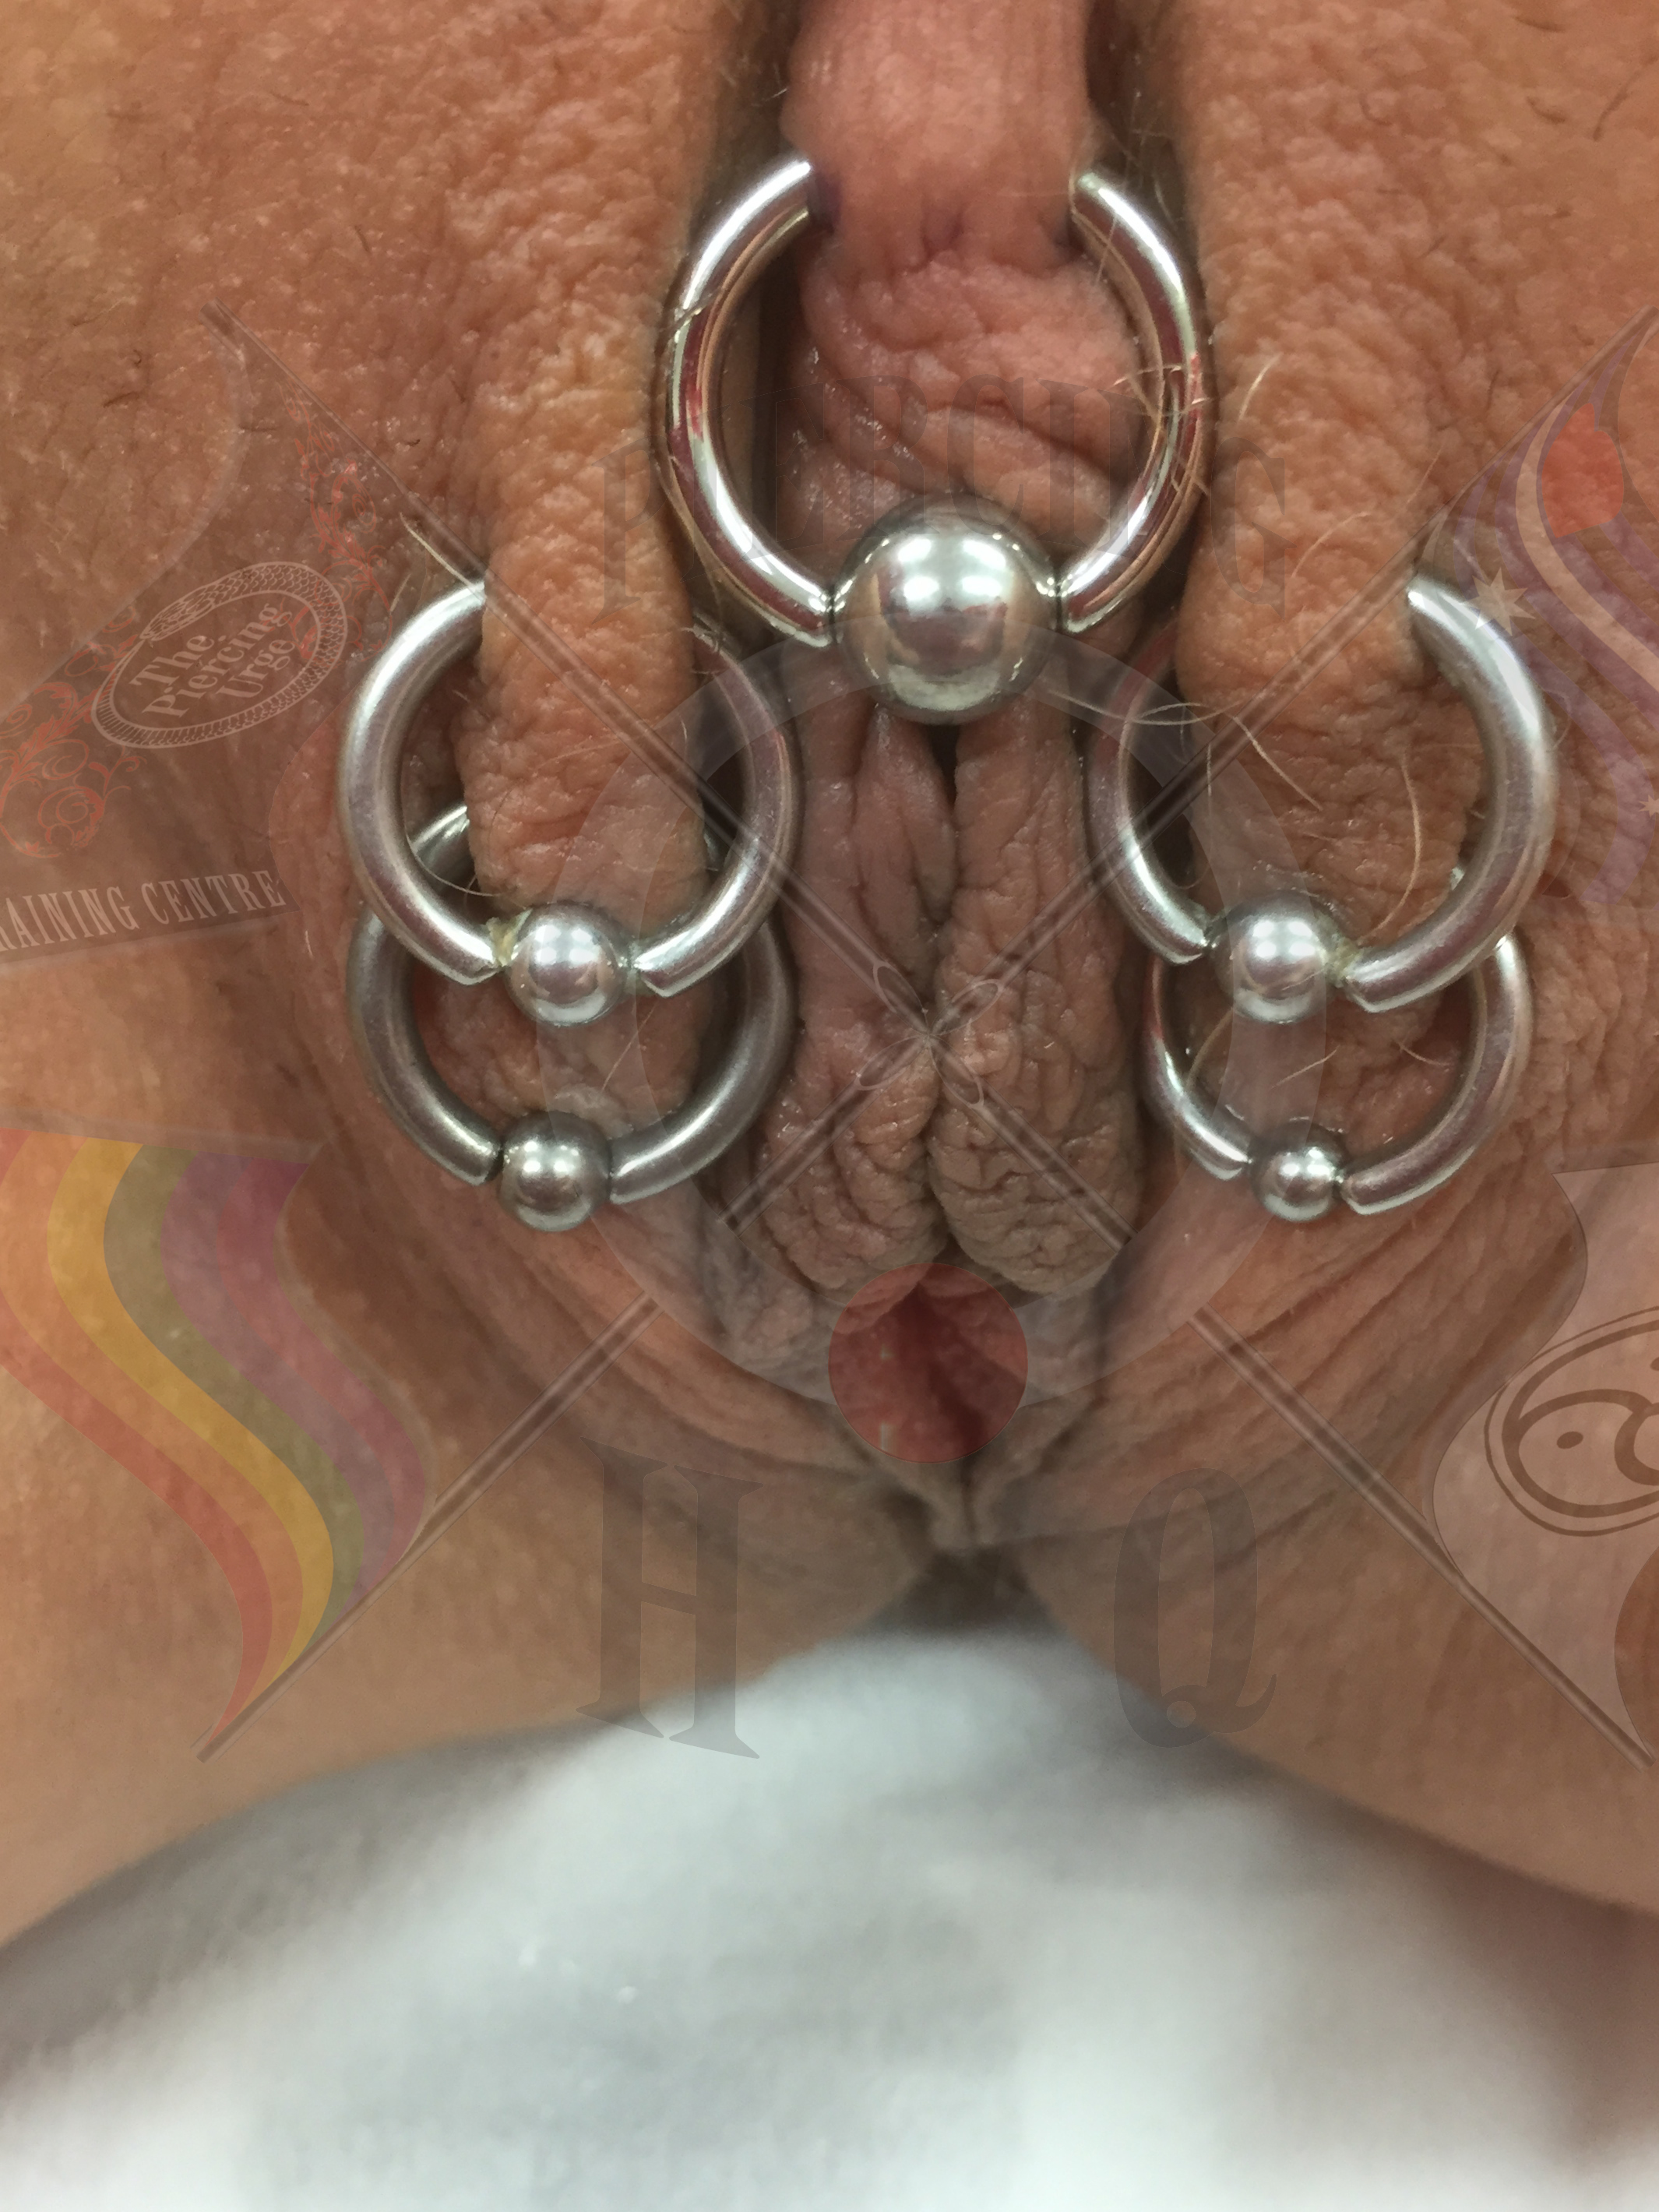 Pierced clit and labia thumbnails